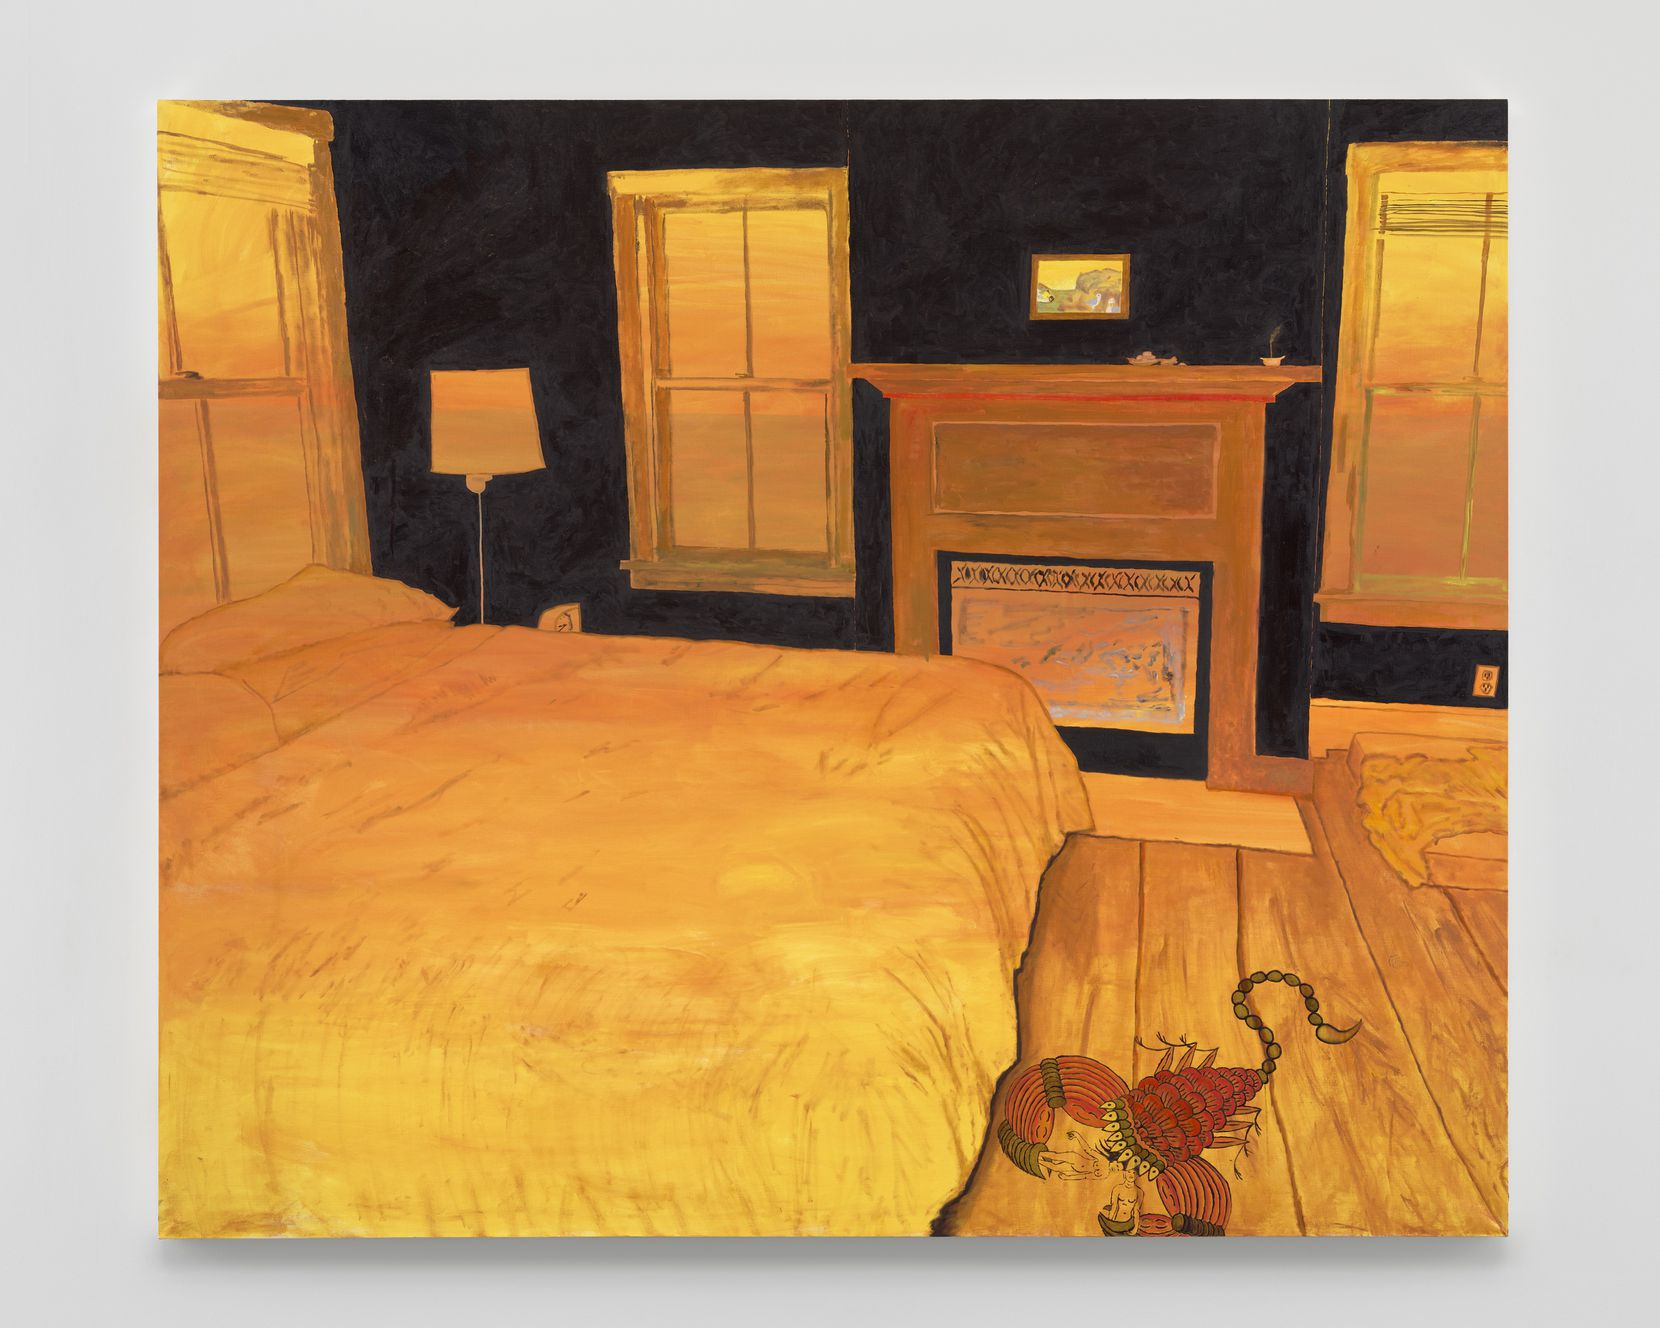 """In the standout """"Buddhadharma Fever"""" (2019), artist Leidy Churchman depicts a golden-hued bedroom with a giant scorpion scrambling along the floor carrying two figures in its claws."""